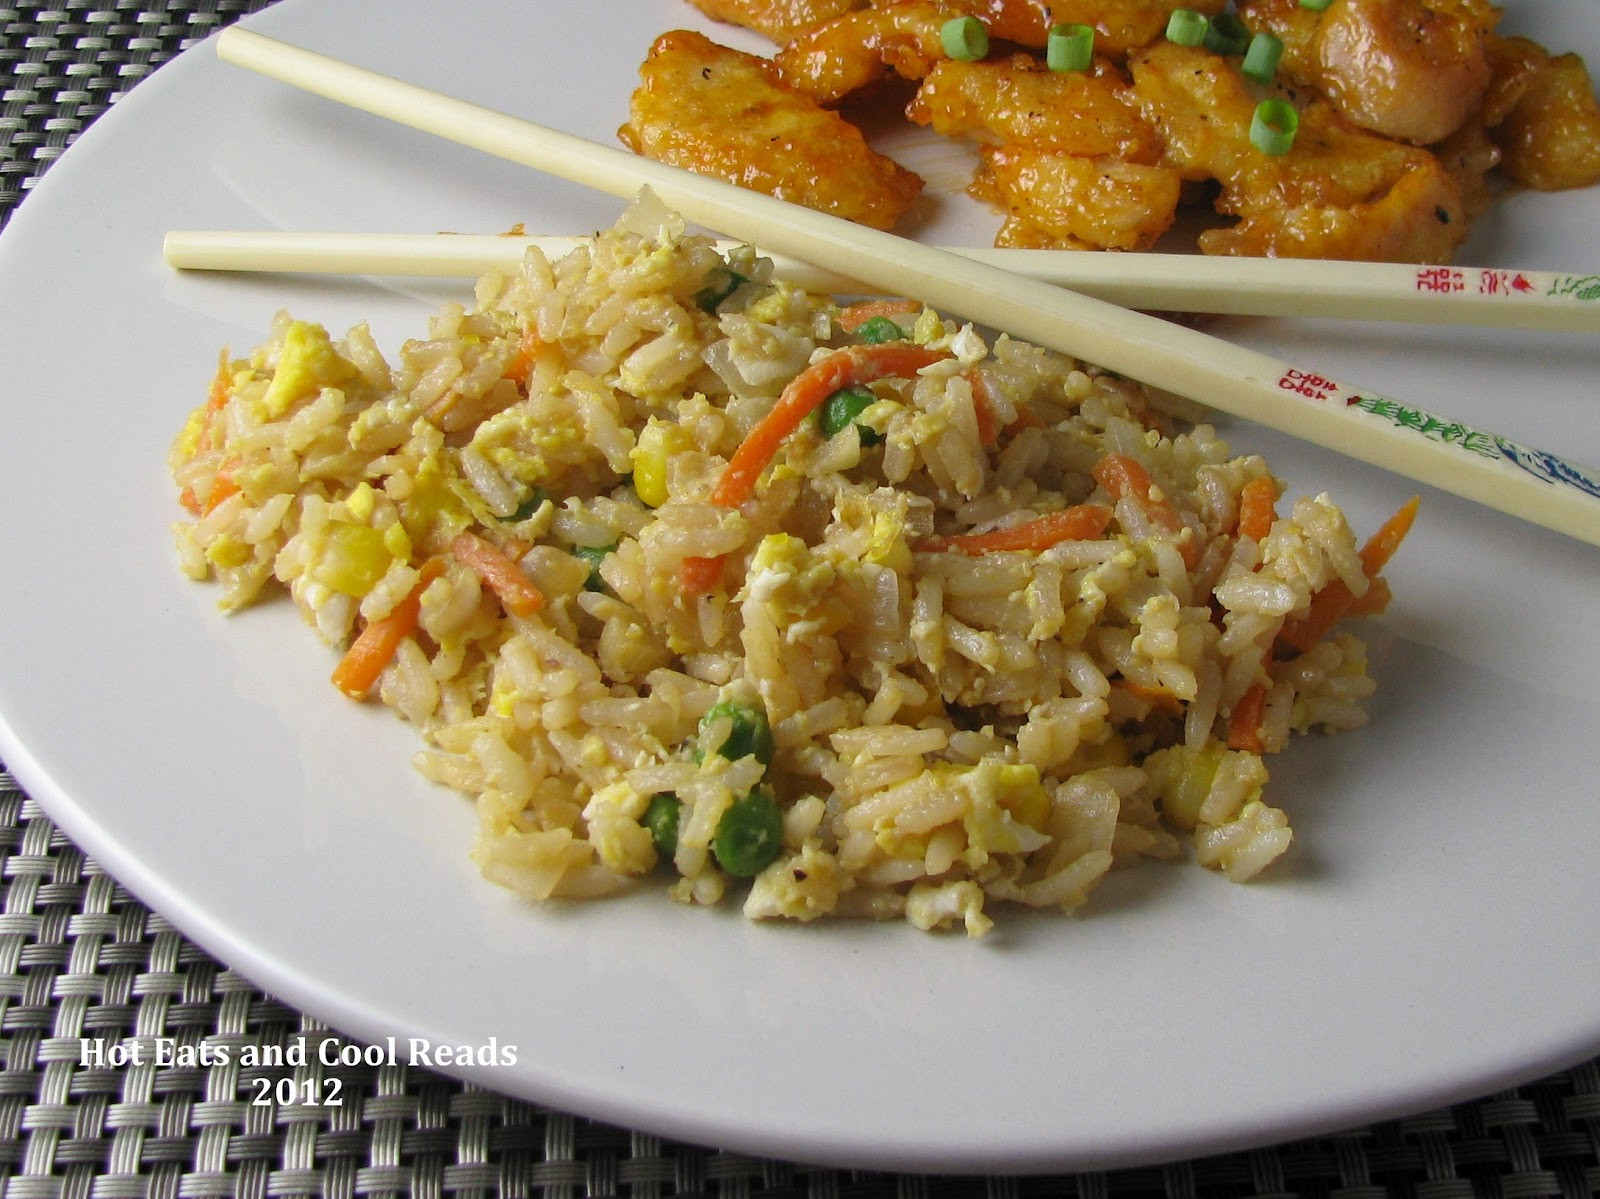 Fried Rice Recipe Easy  Hot Eats and Cool Reads Easy Fried Rice Recipe